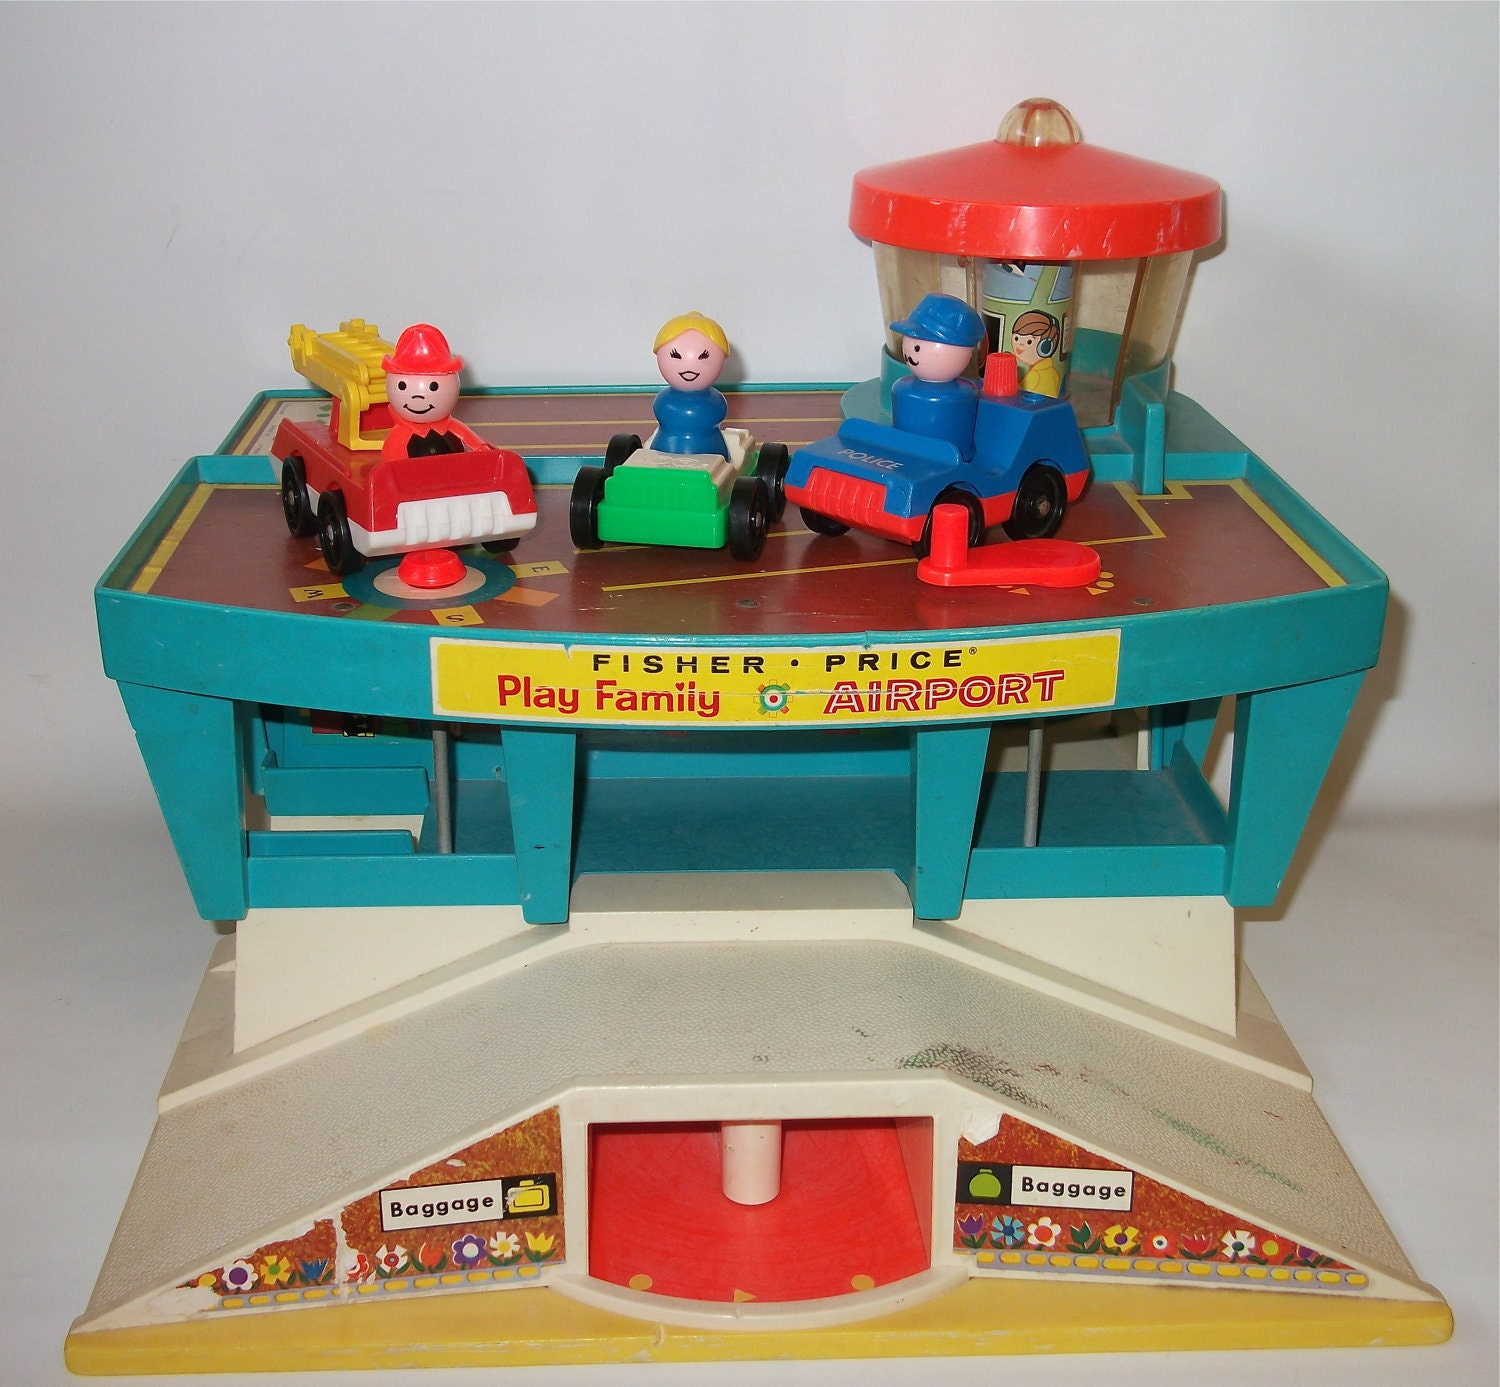 vintage fisher price airport playset vintage play family. Black Bedroom Furniture Sets. Home Design Ideas